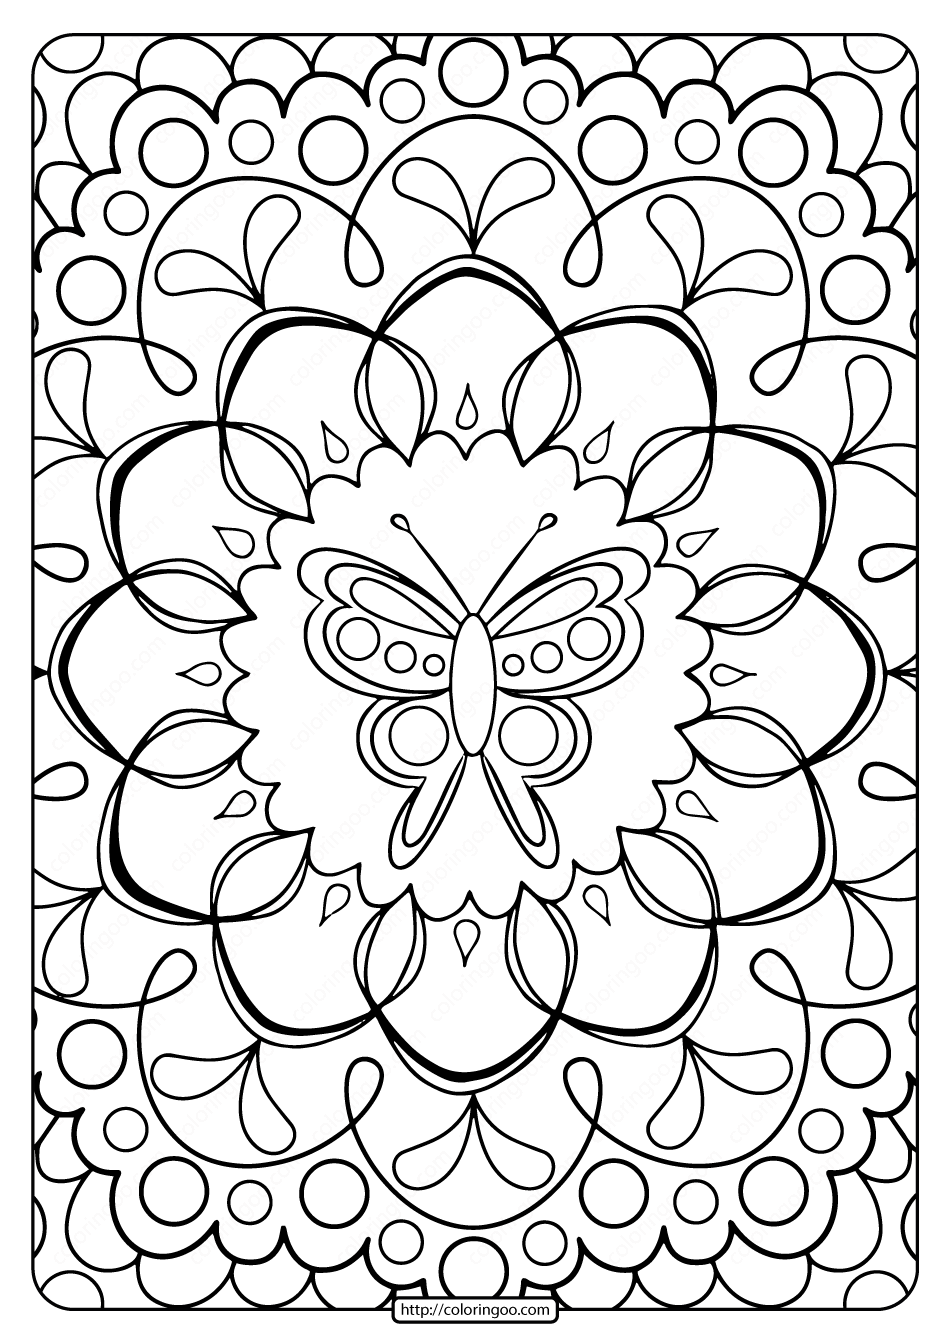 coloring printouts free printable belle coloring pages for kids printouts coloring